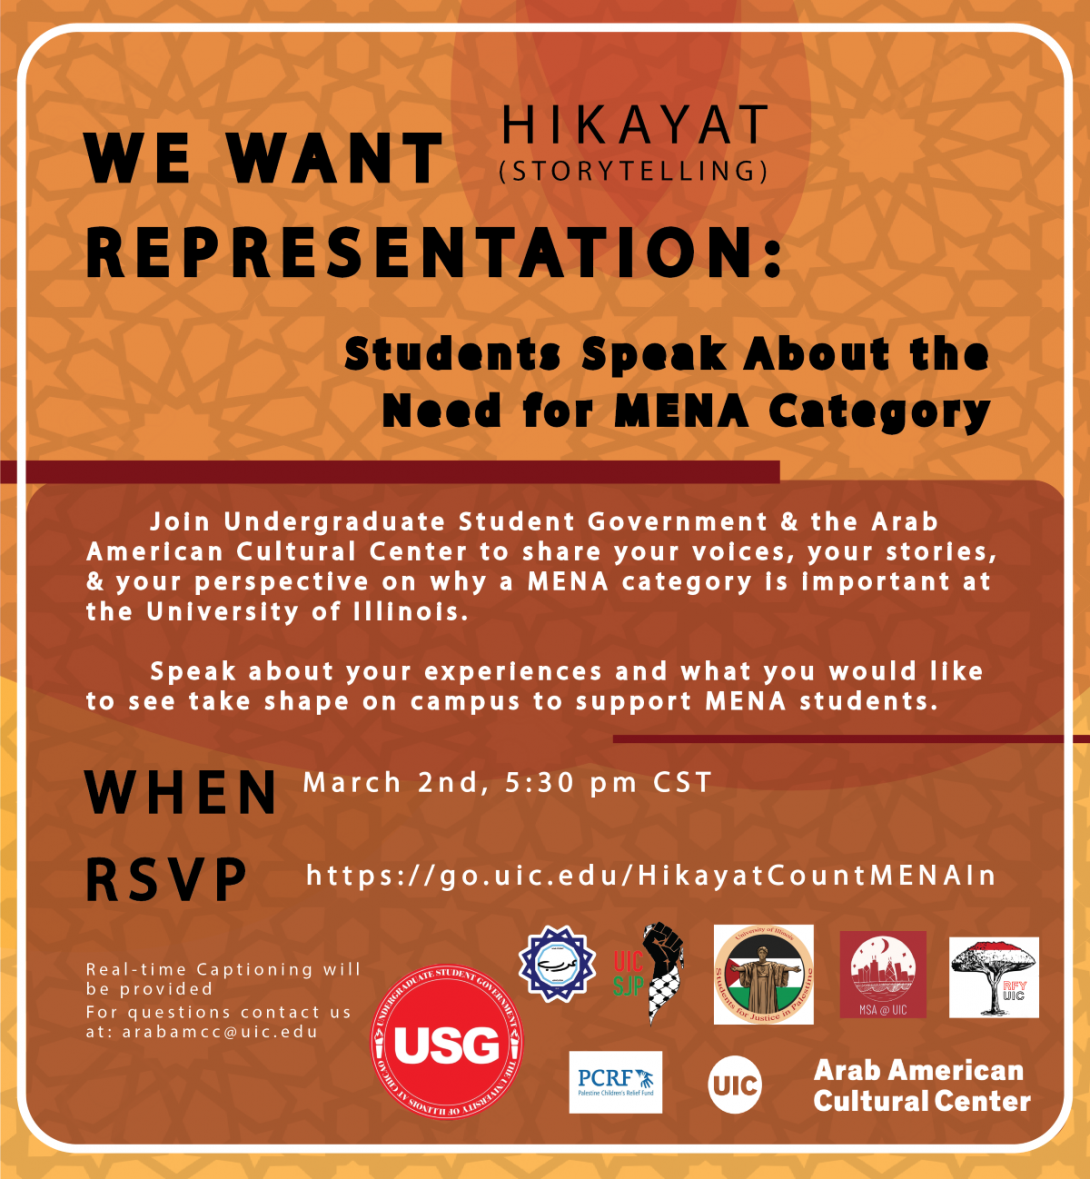 Flyer background is different shades of orange with a geometric Islamic art motif. Logos of organizers and sponsoring student groups is in the bottom right corner. The rest of the flyer is event title, information, date and time, RSVP, and contact information in black and white writing.